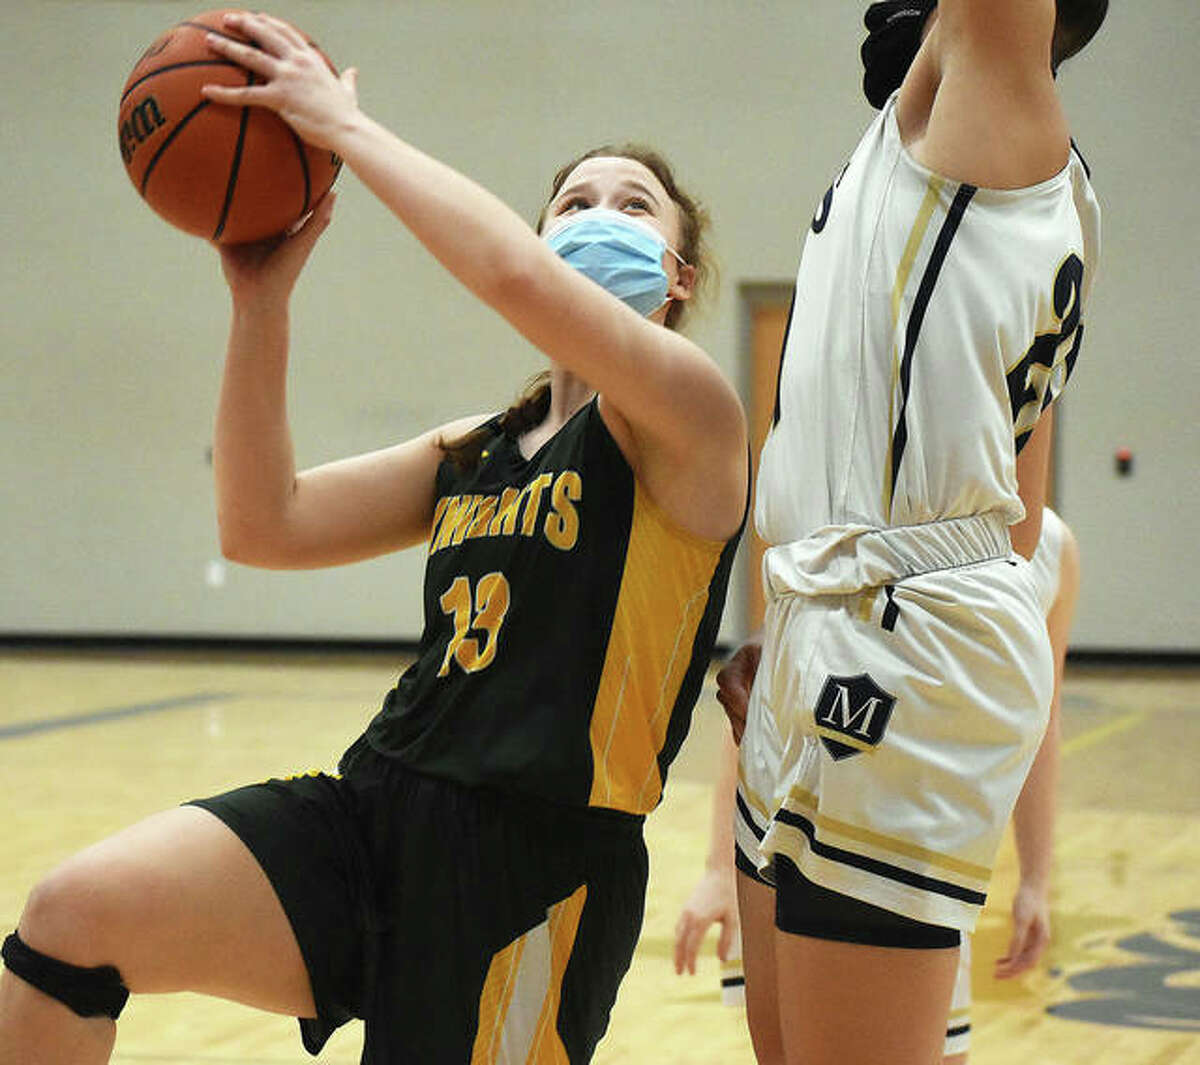 Metro-East Lutheran forward Caitlin Reynolds puts up a contested shot in the first quarter of Friday's game against Maryville Christian.